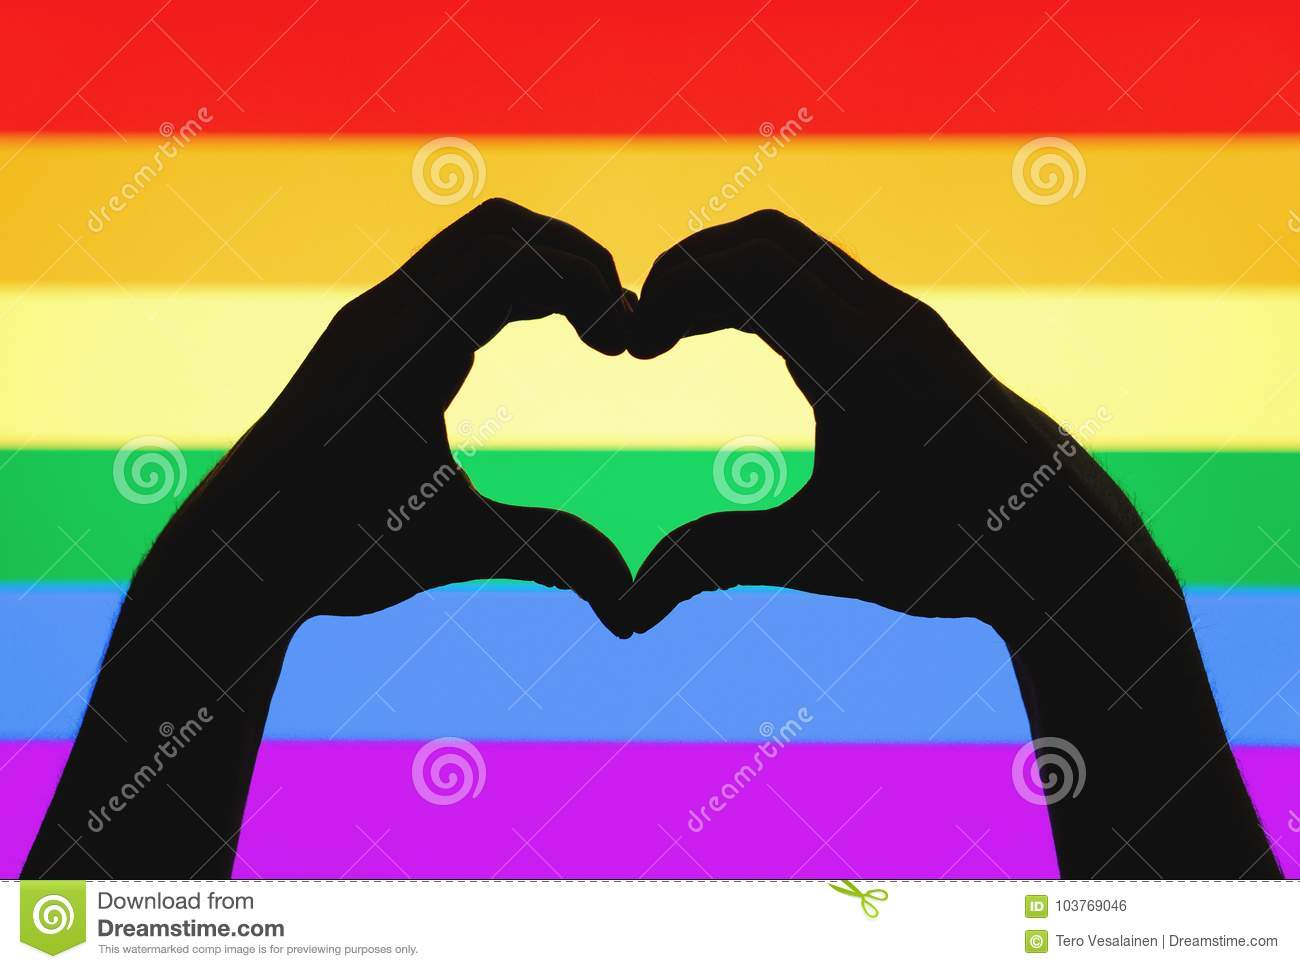 Hands showing heart sign on gay pride and LGBT rainbow flag